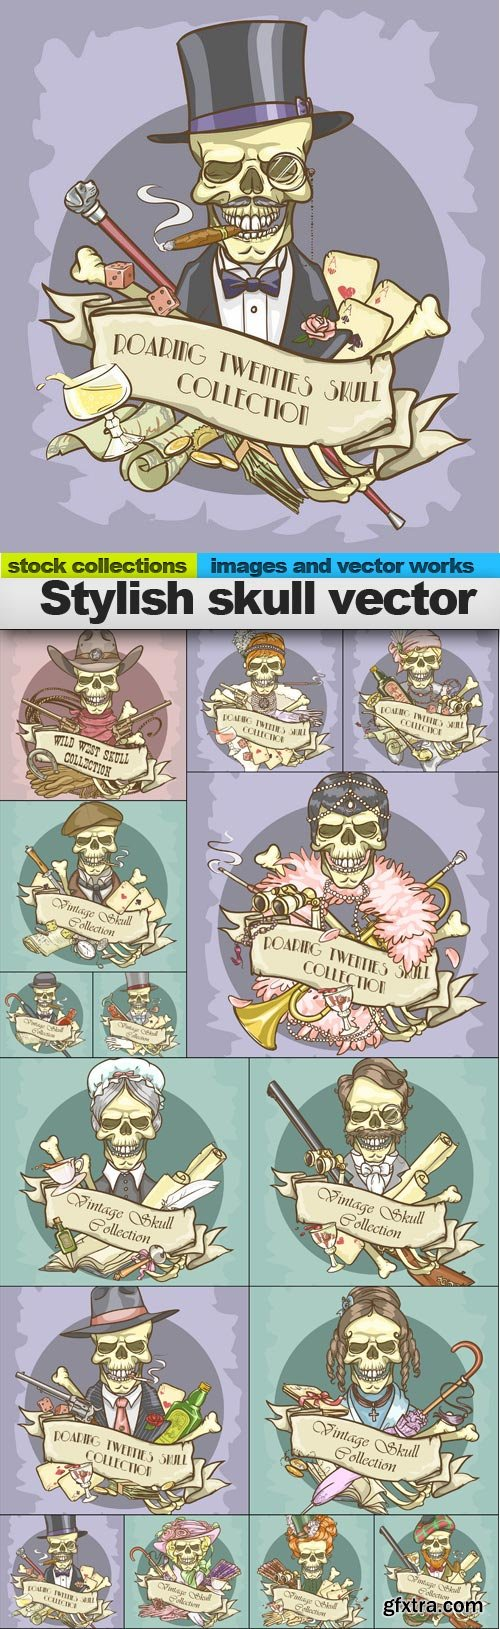 Stylish skull vector, 15 x EPS